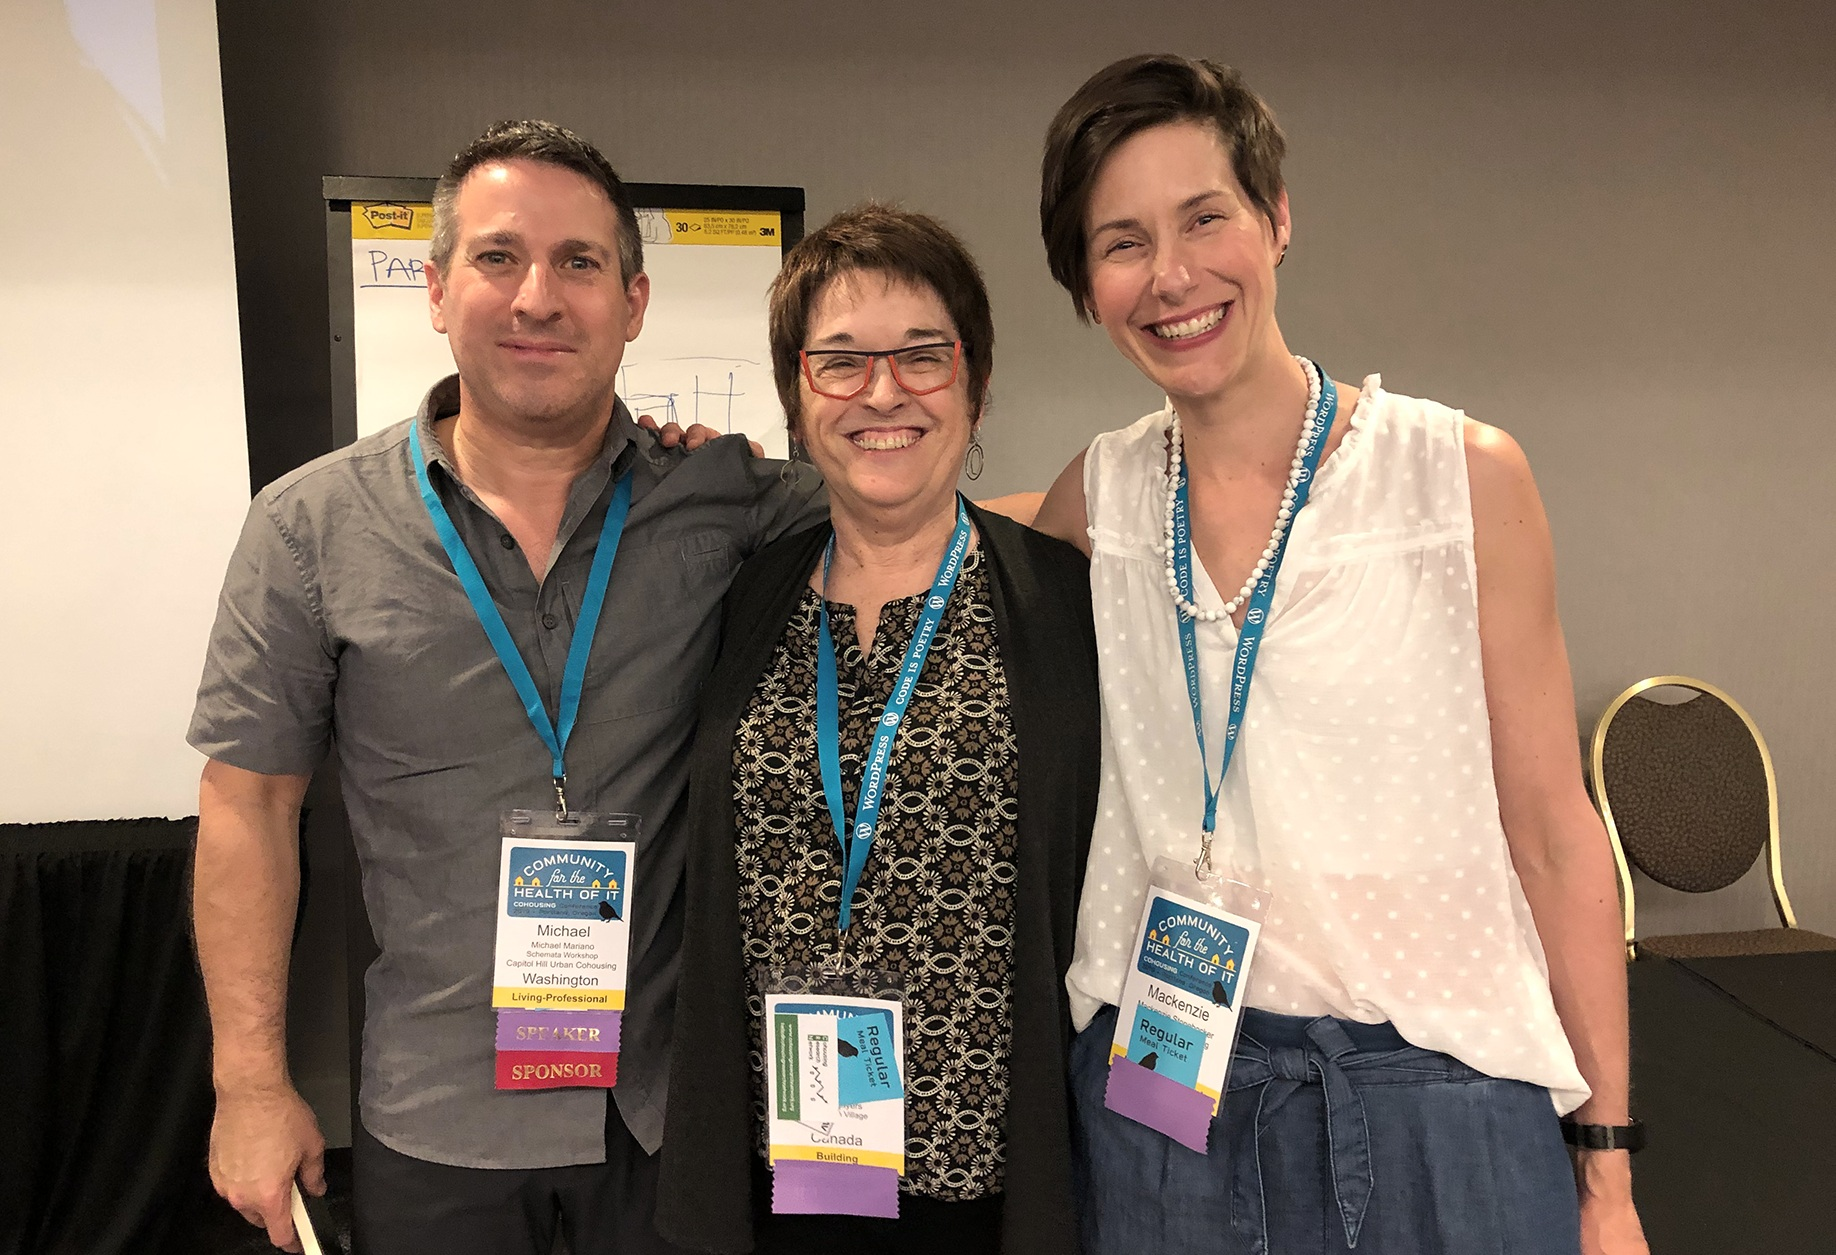 Mike presented case studies on urban cohousing with Kathy Sayers and MacKenzie Stonehocker of Vancouver, BC